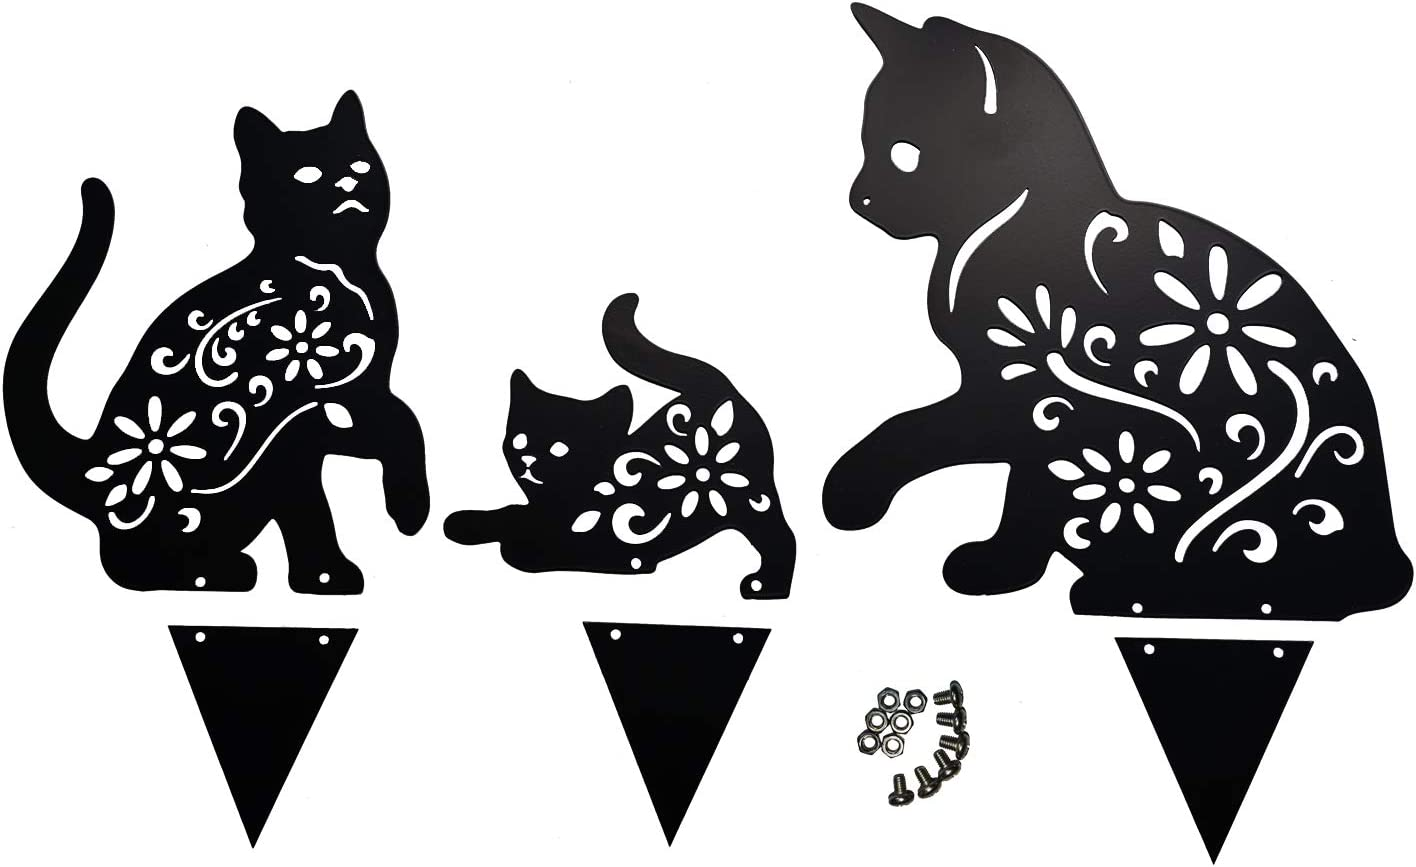 HANNIER Metal Yard Art Stake Black Cat Statue Decor Lawn Ornaments Outdoor and Elegant Garden Design Sculptures Cutouts Silhouette Fence Clearance (CAT-Family)